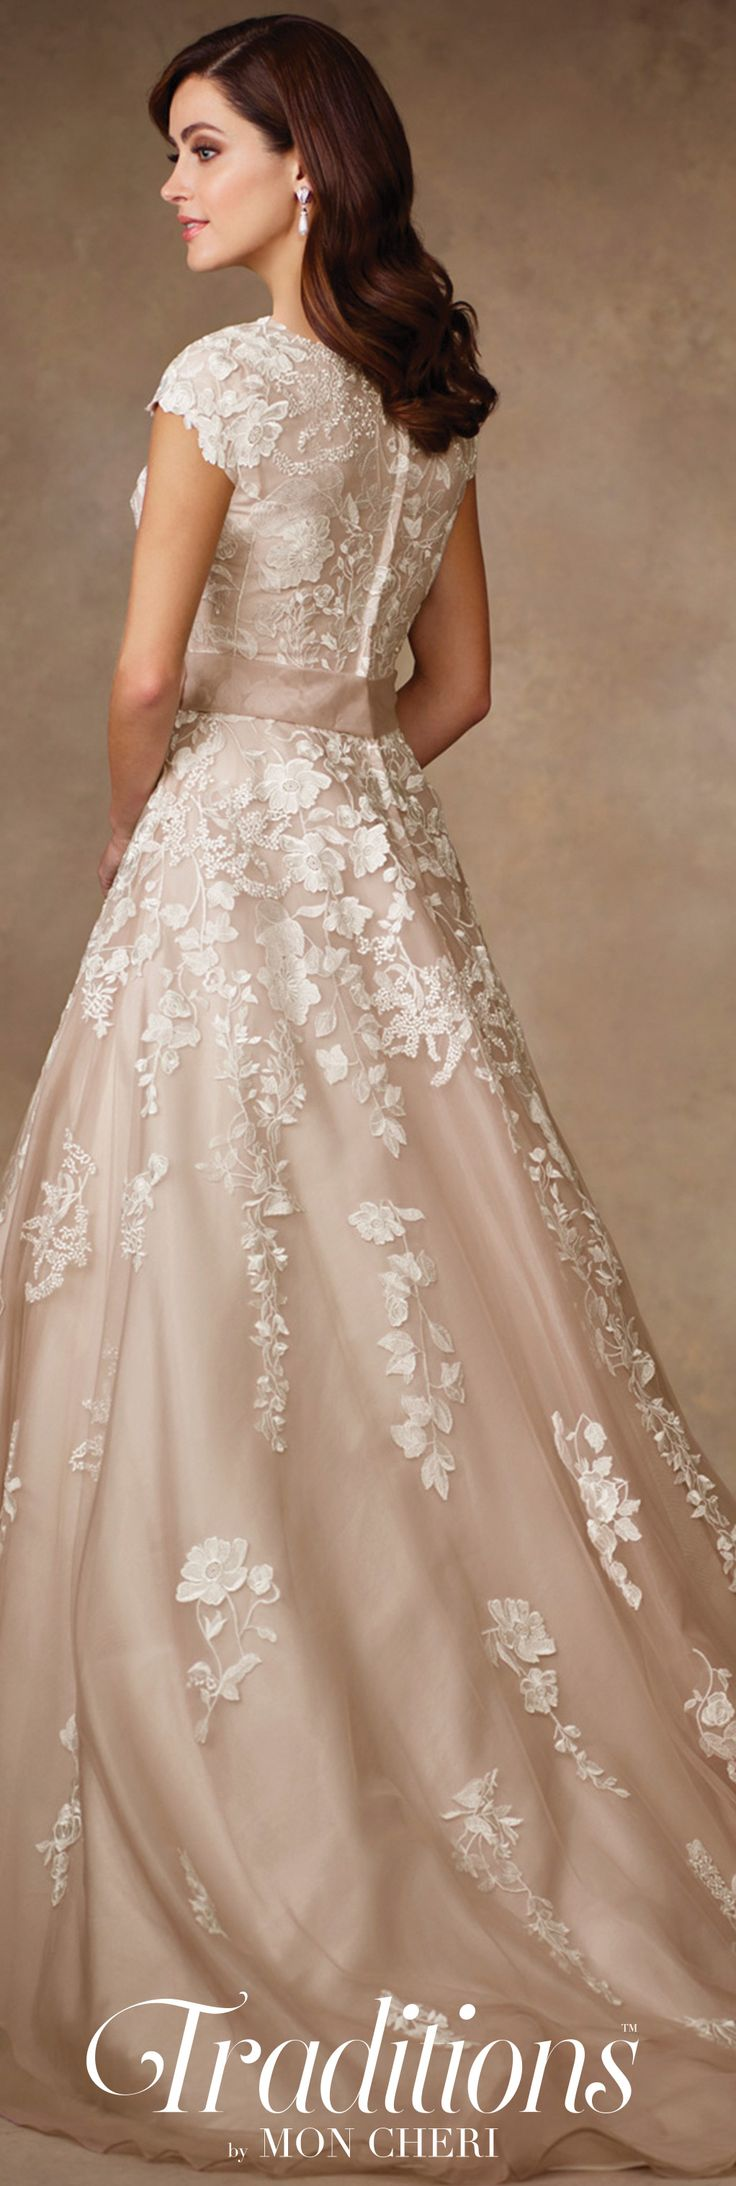 Best 25 bow wedding dresses ideas on pinterest new for Best wedding dresses with sleeves